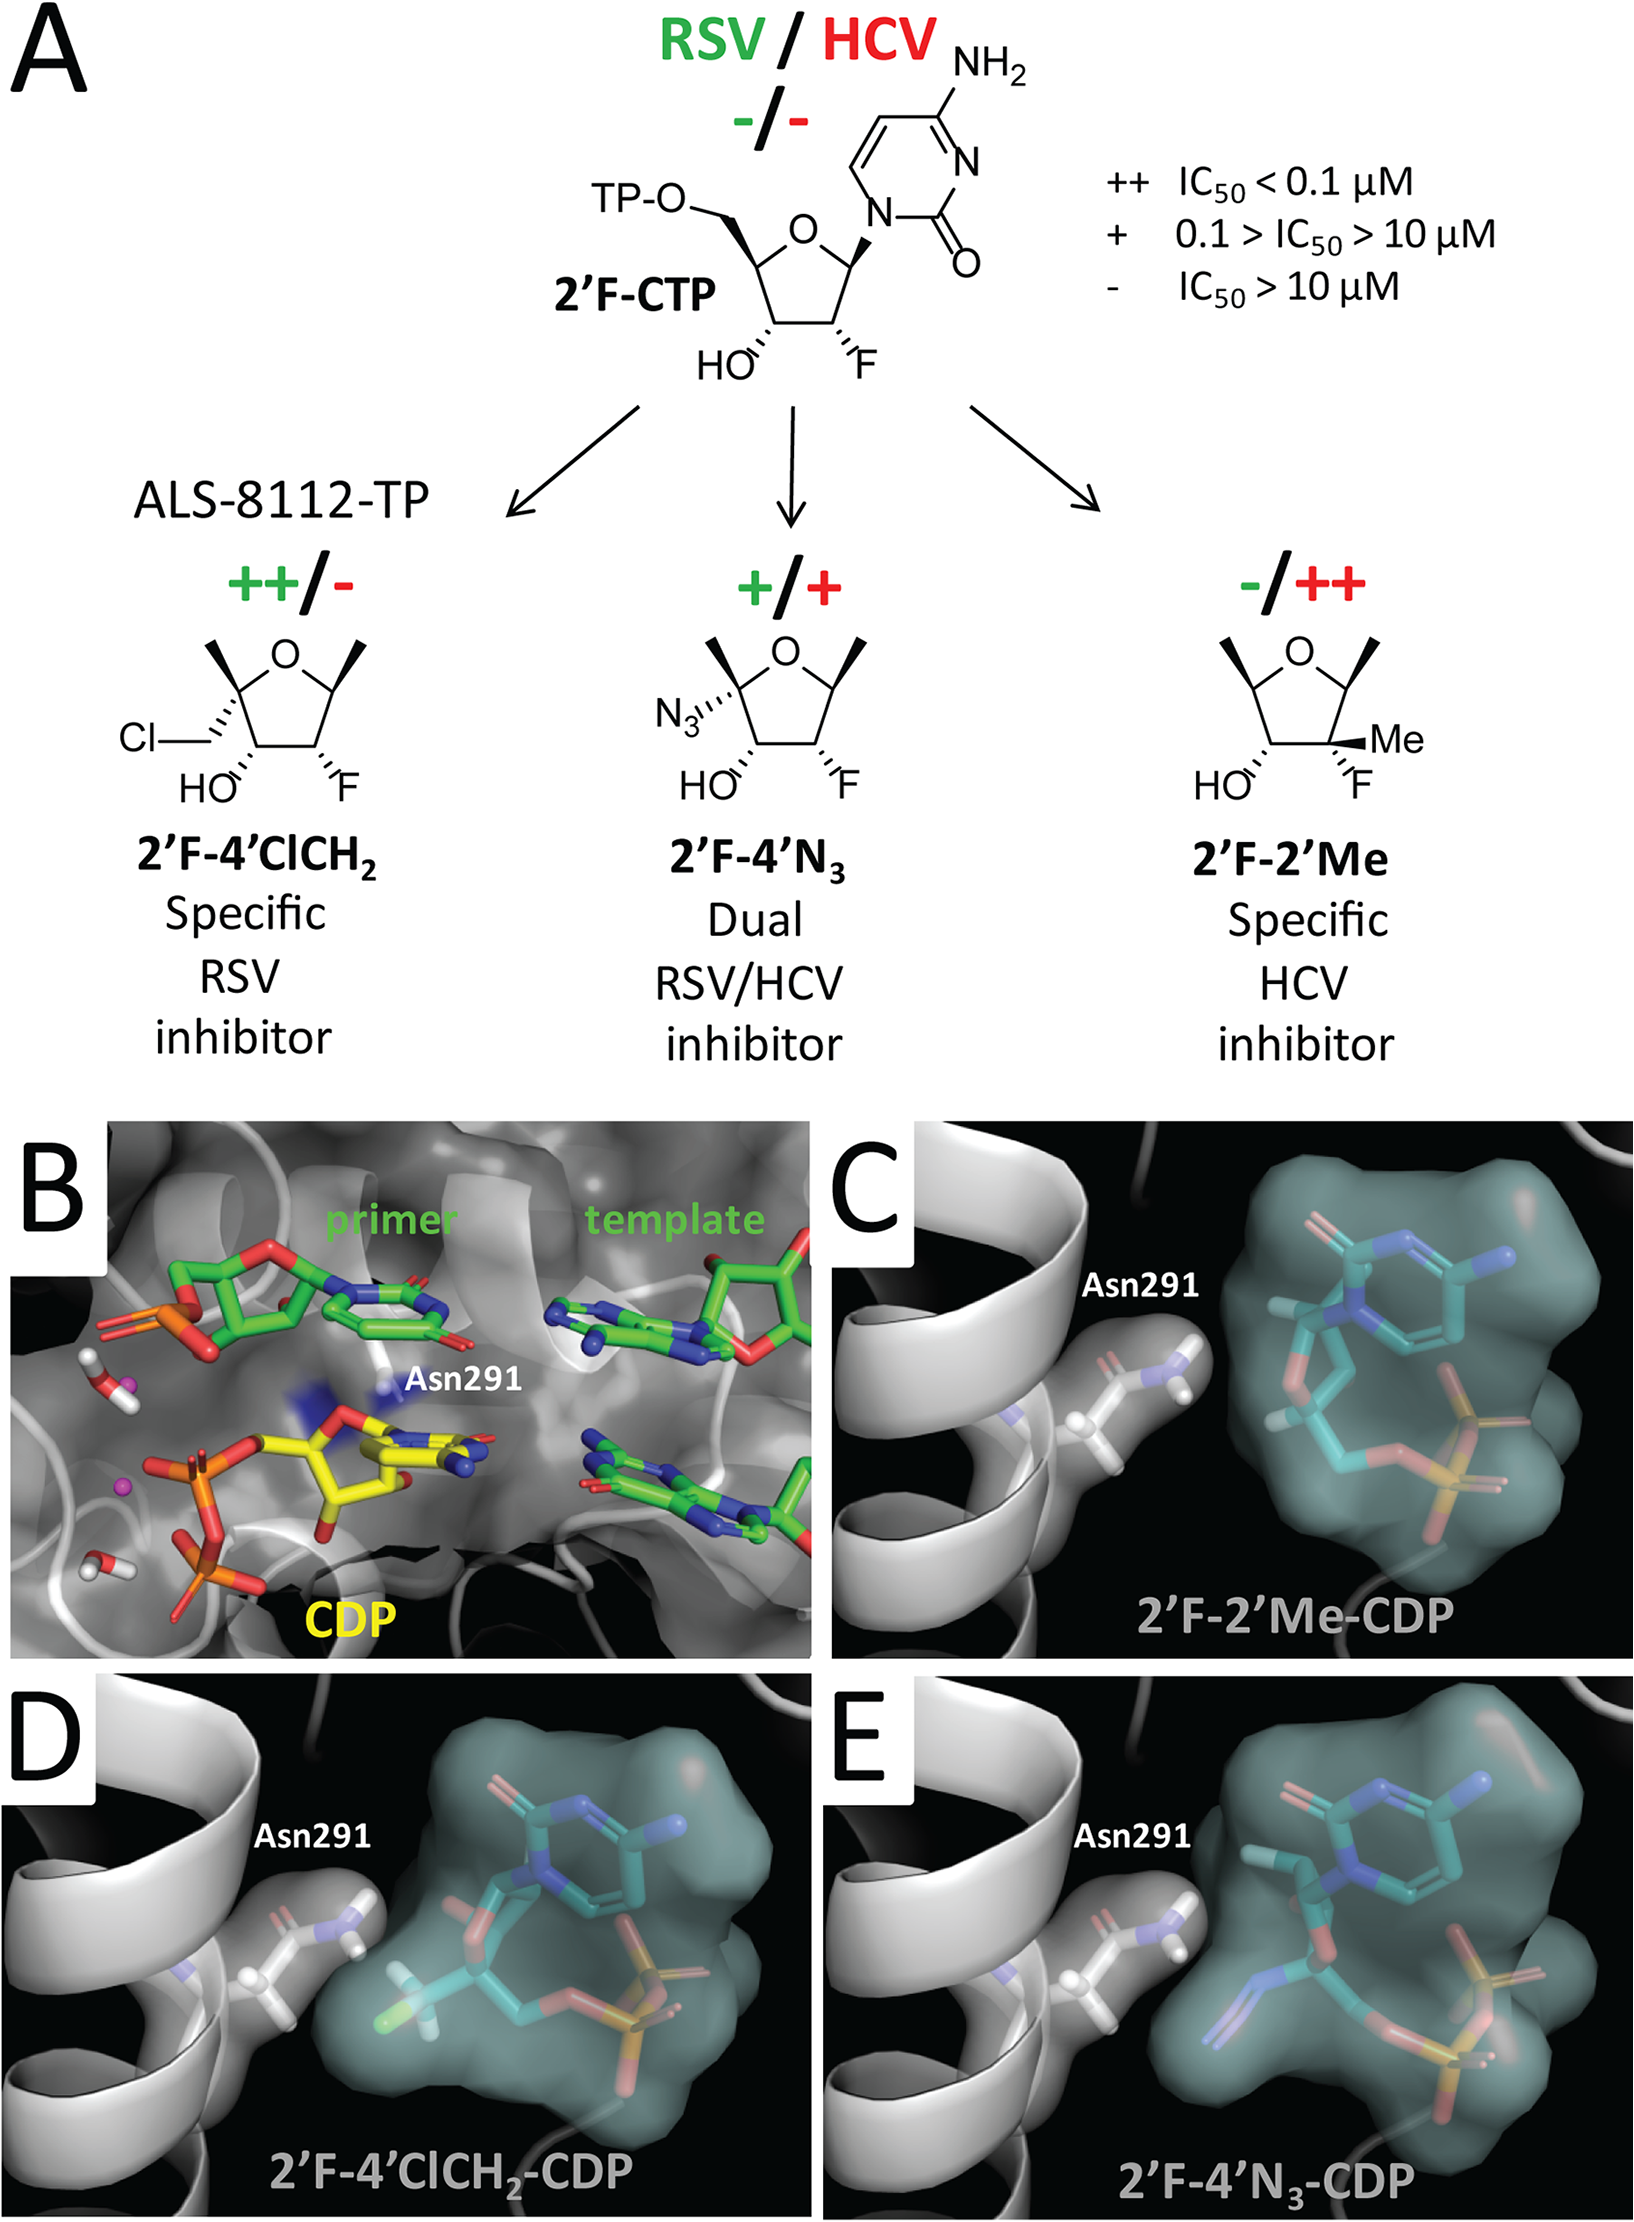 Rational design of ALS-8112 as a selective RSV inhibitor.